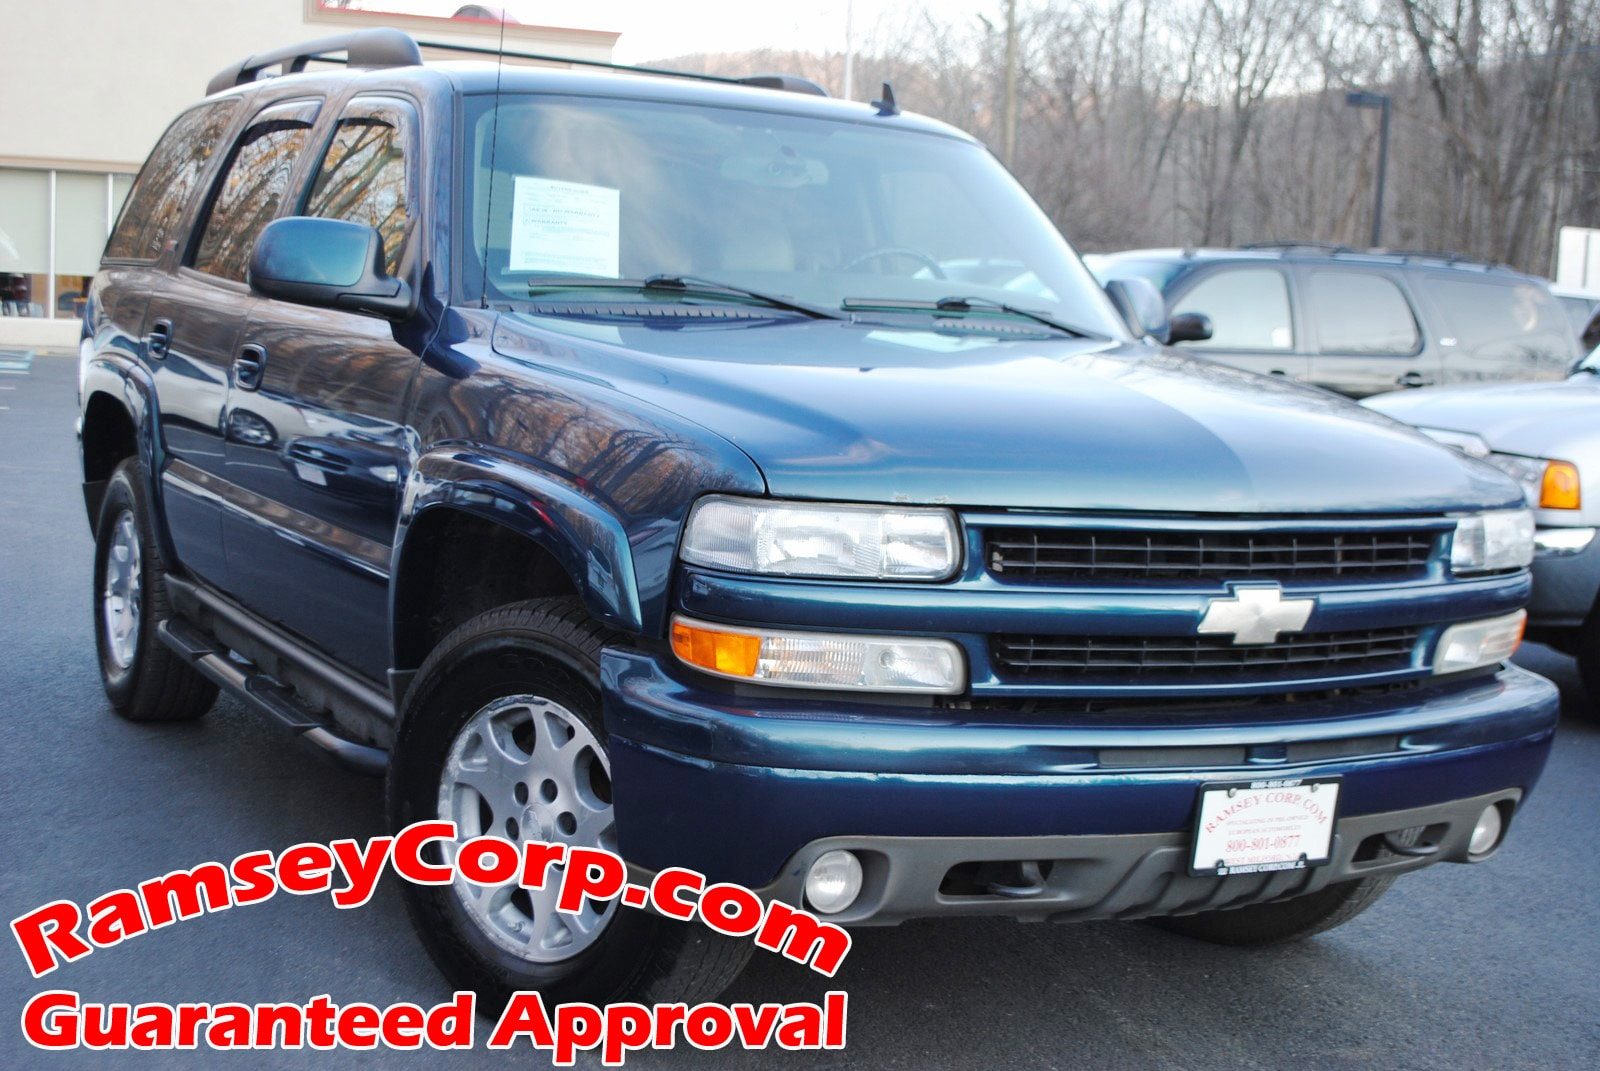 Used 2006 Chevrolet Tahoe For Sale at Ramsey Corp    VIN: 1GNEK13Z86R129695